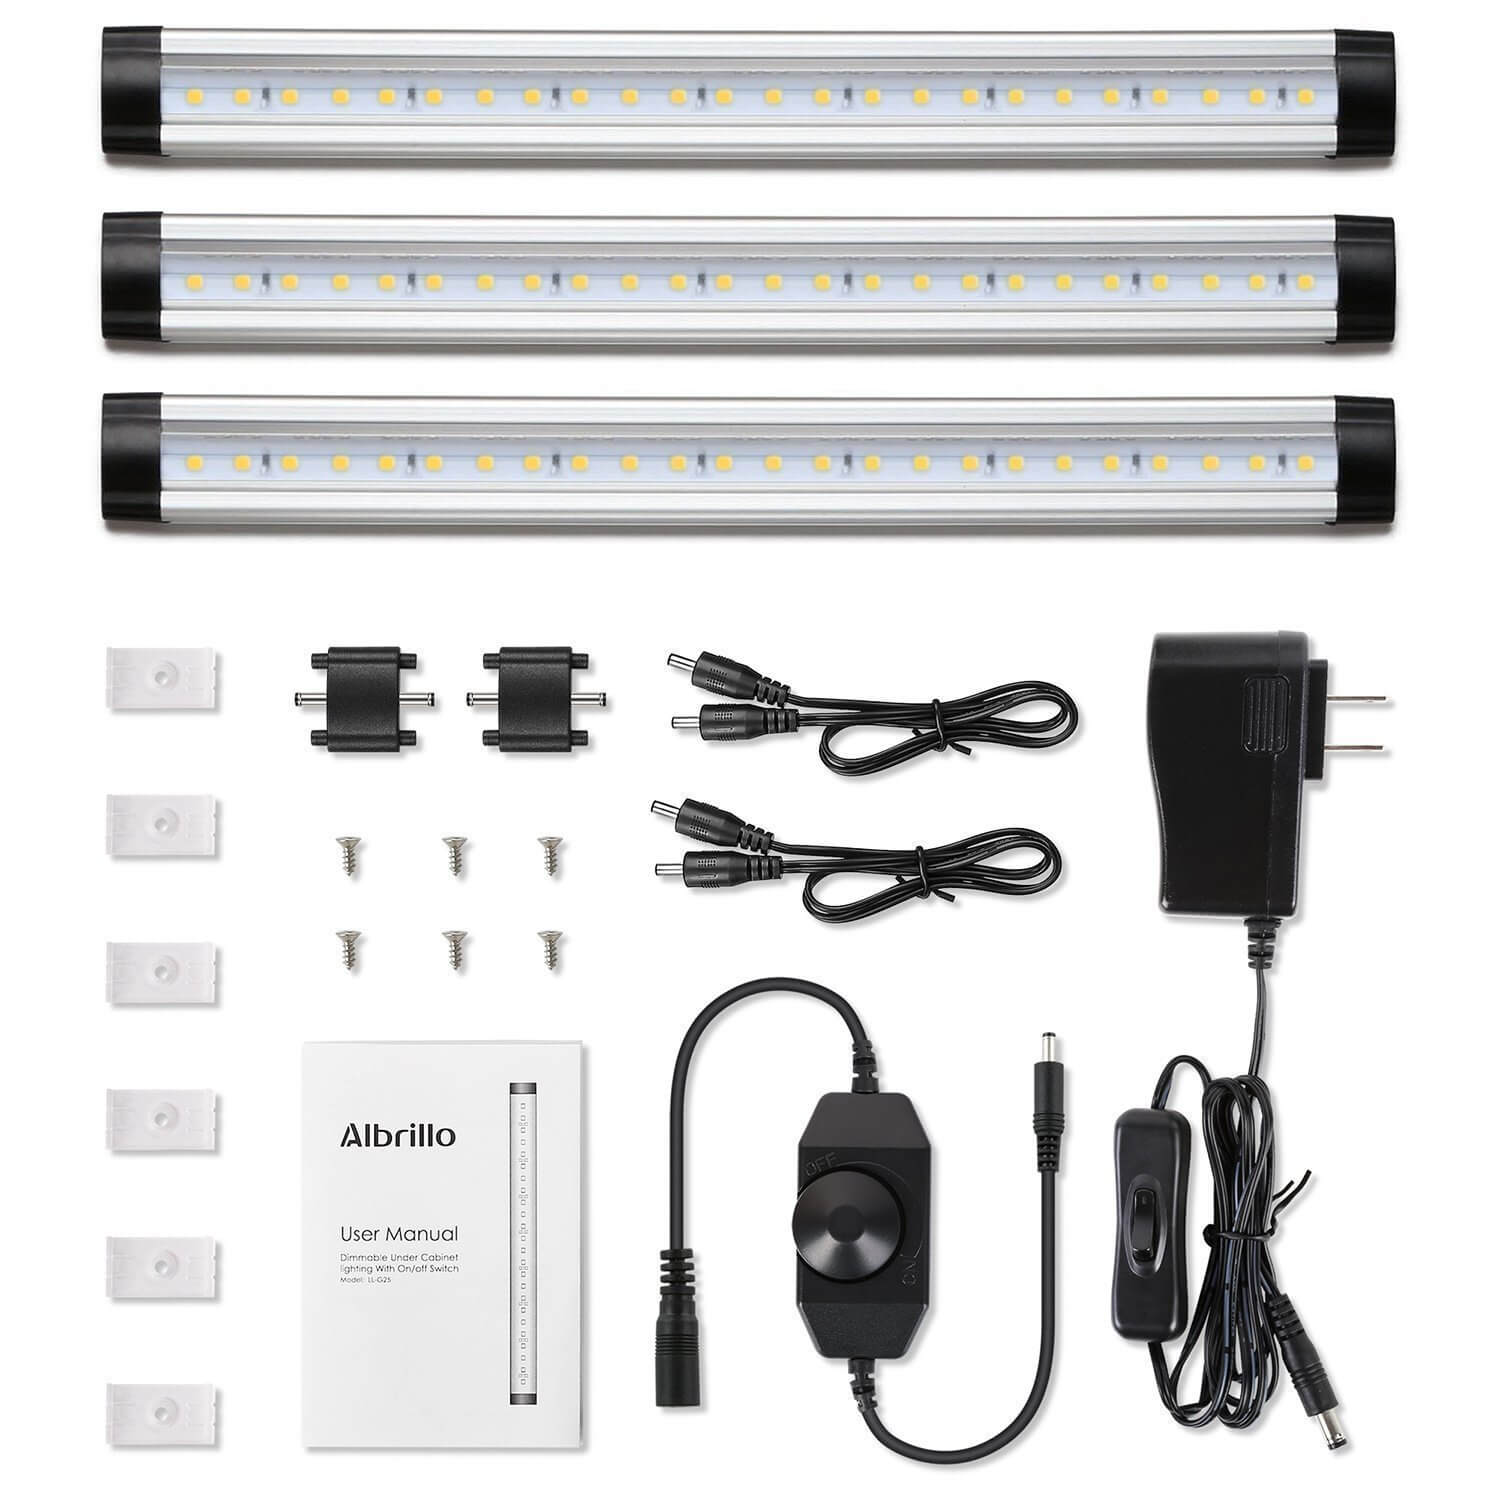 Best Garage Workbench Lights Led Under Cabinet